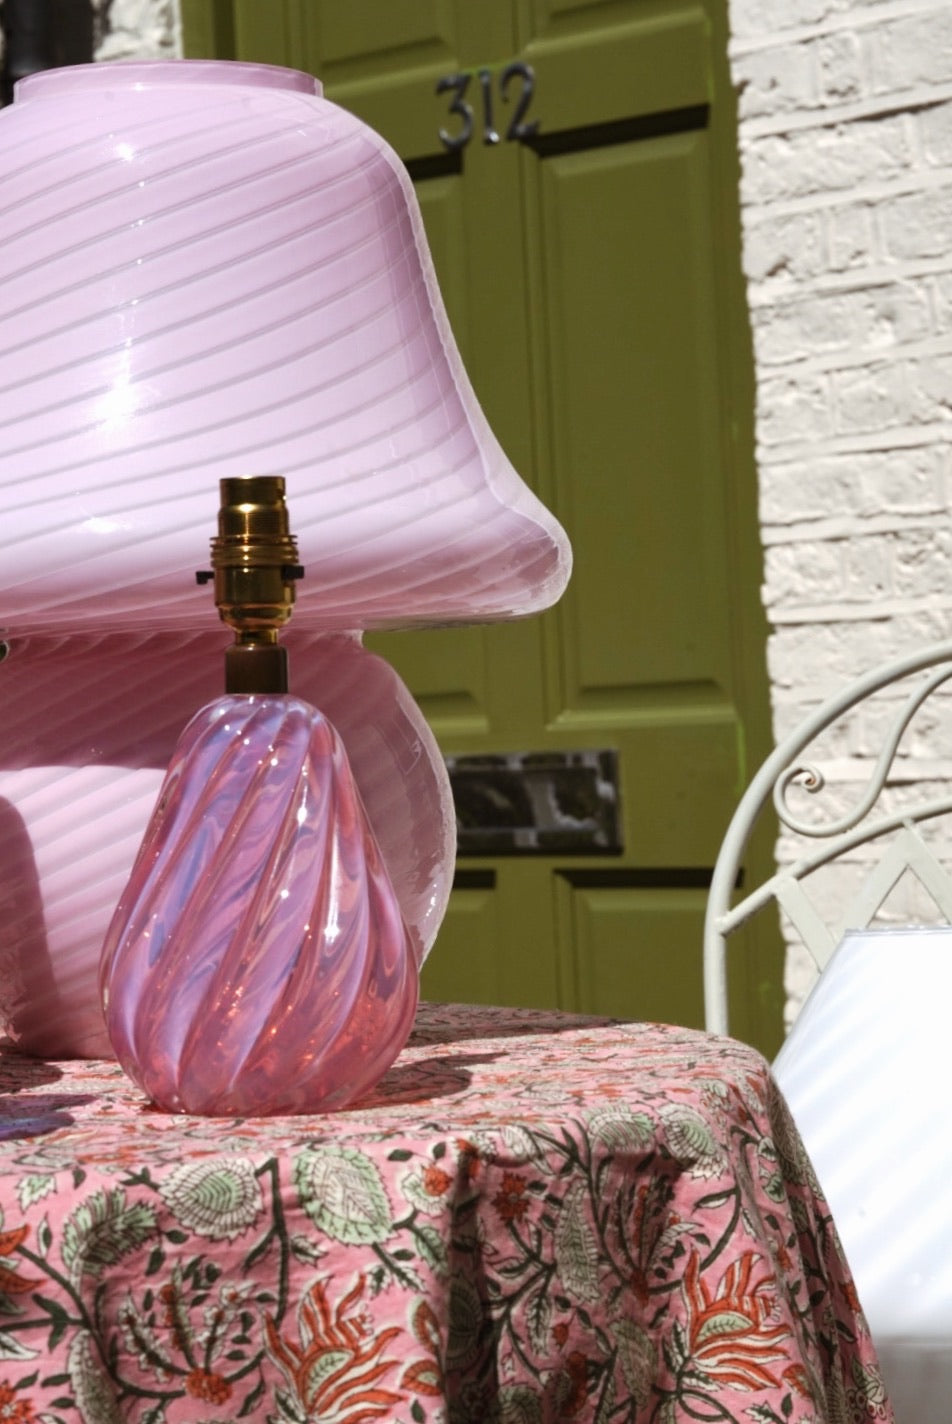 Vintage Pink Opalescent Murano Lampbase by Archimedes Seguso